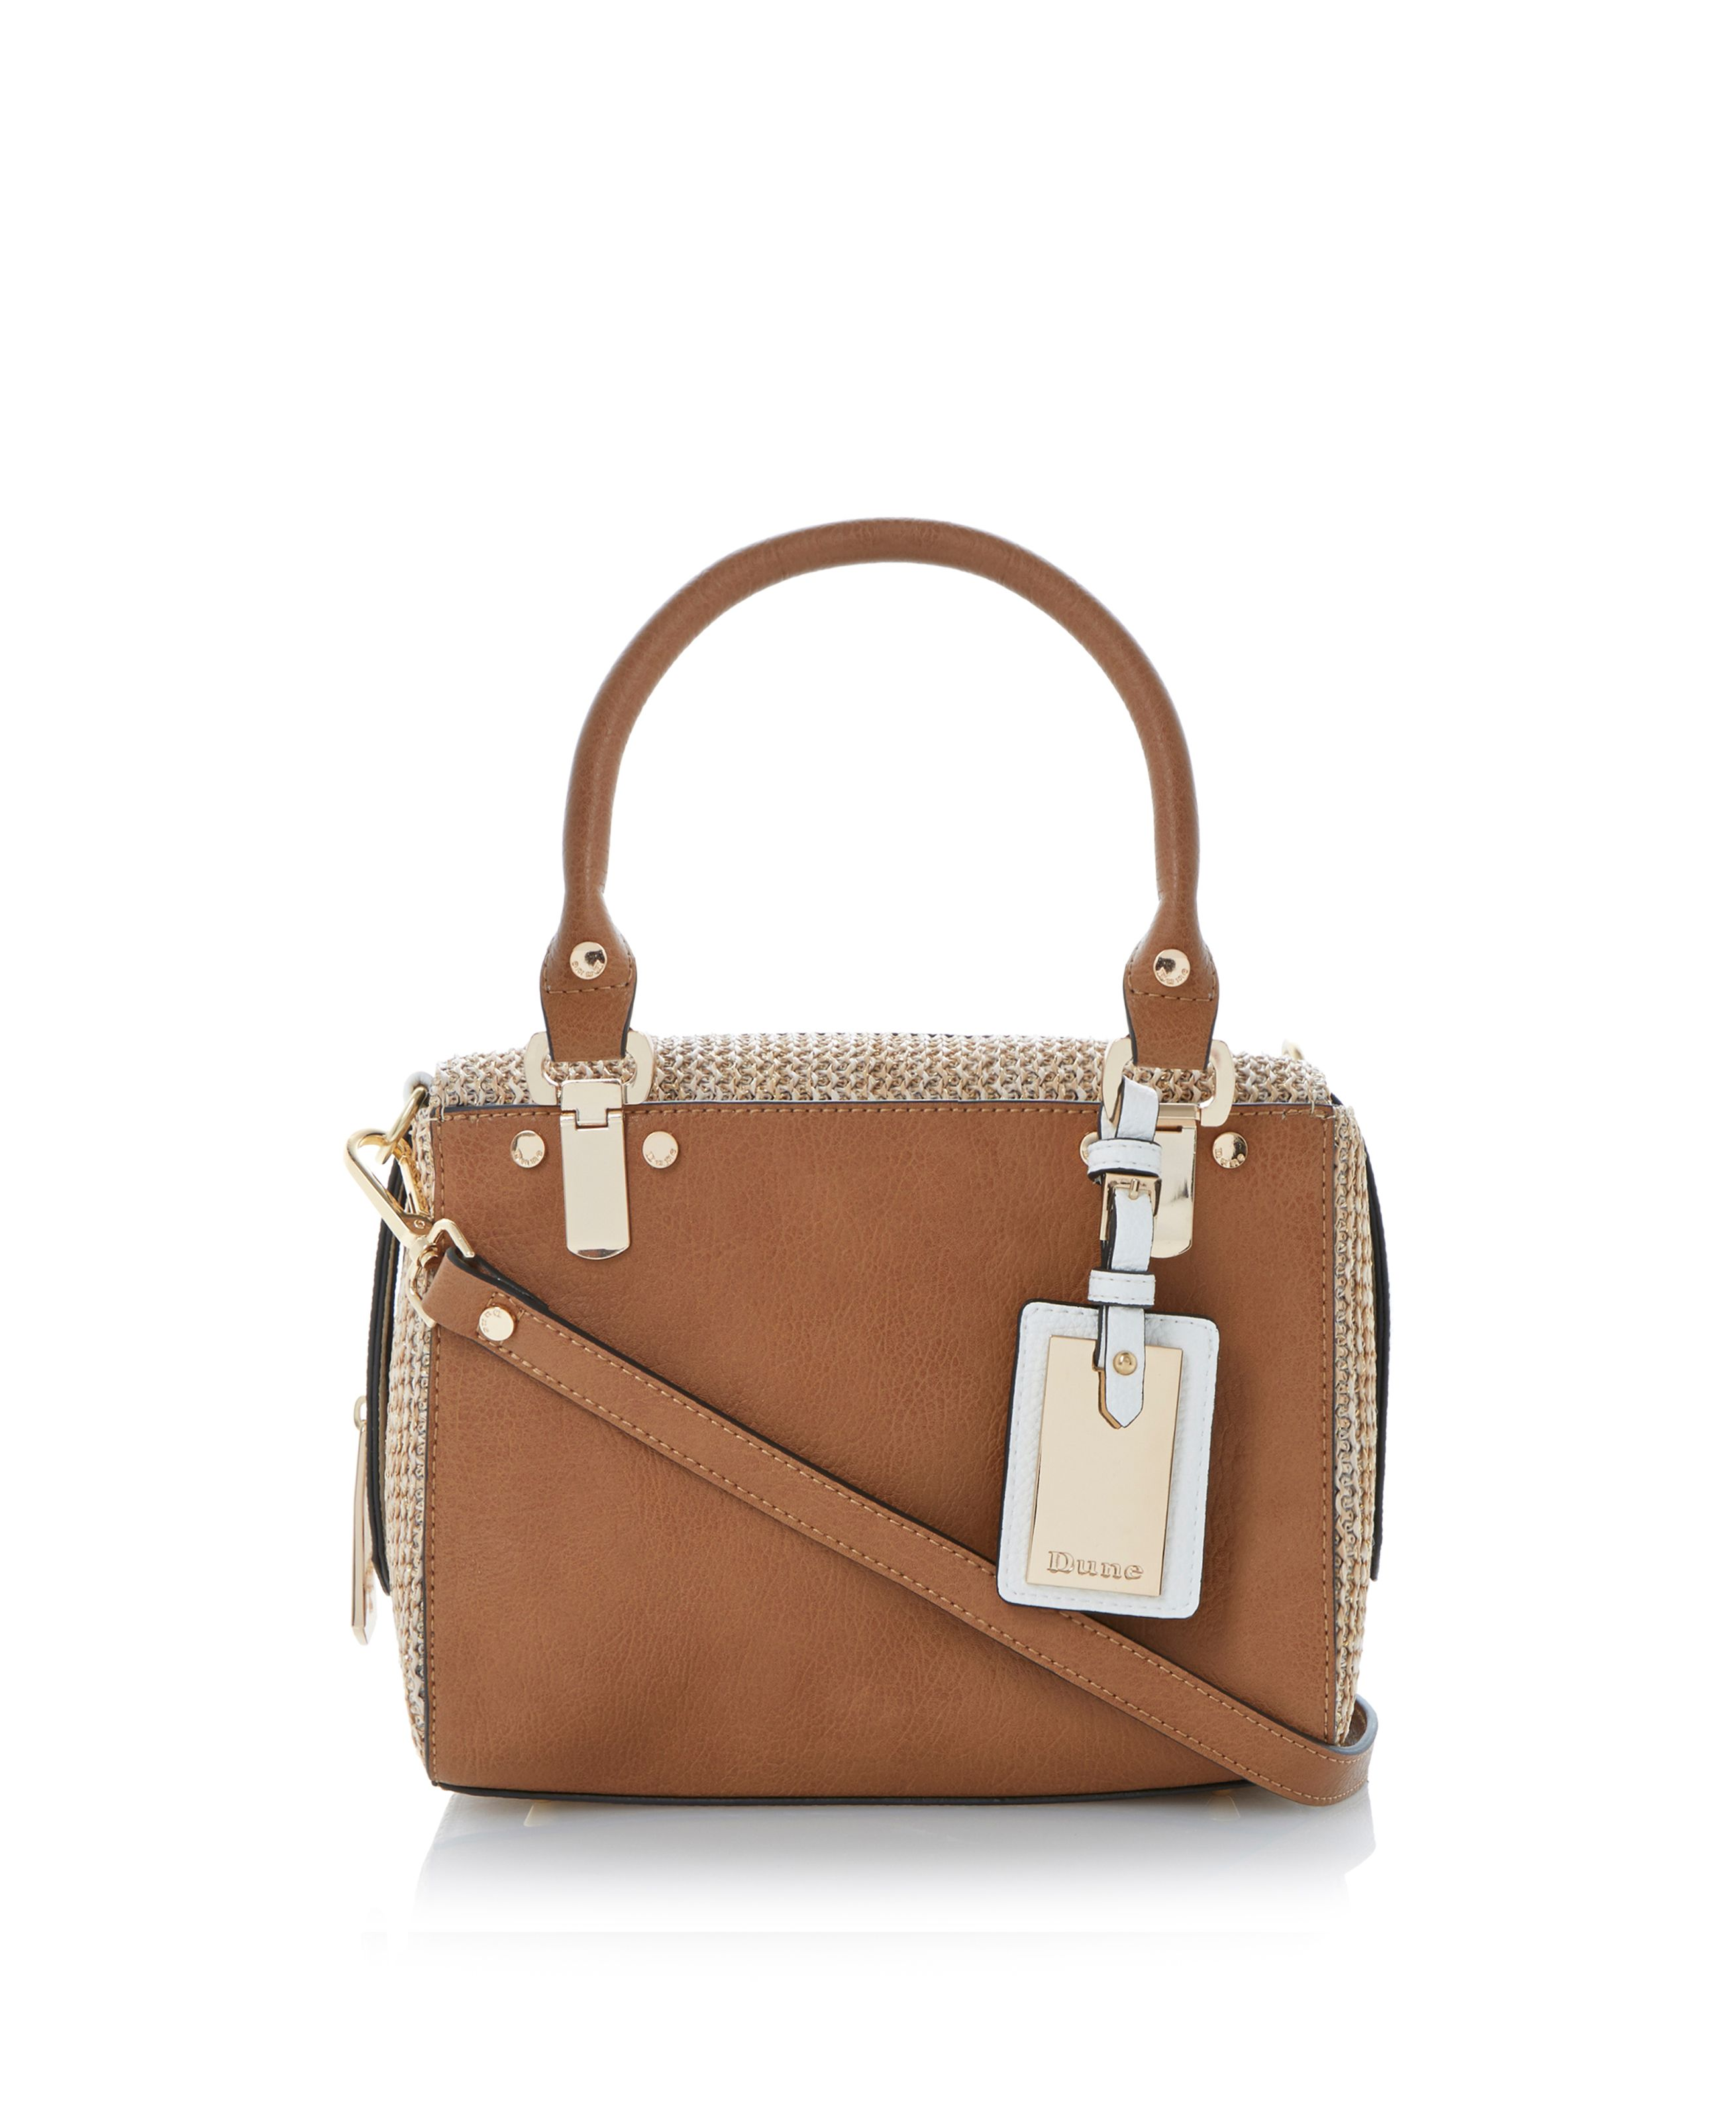 Dickley boxy zip around top handle bag